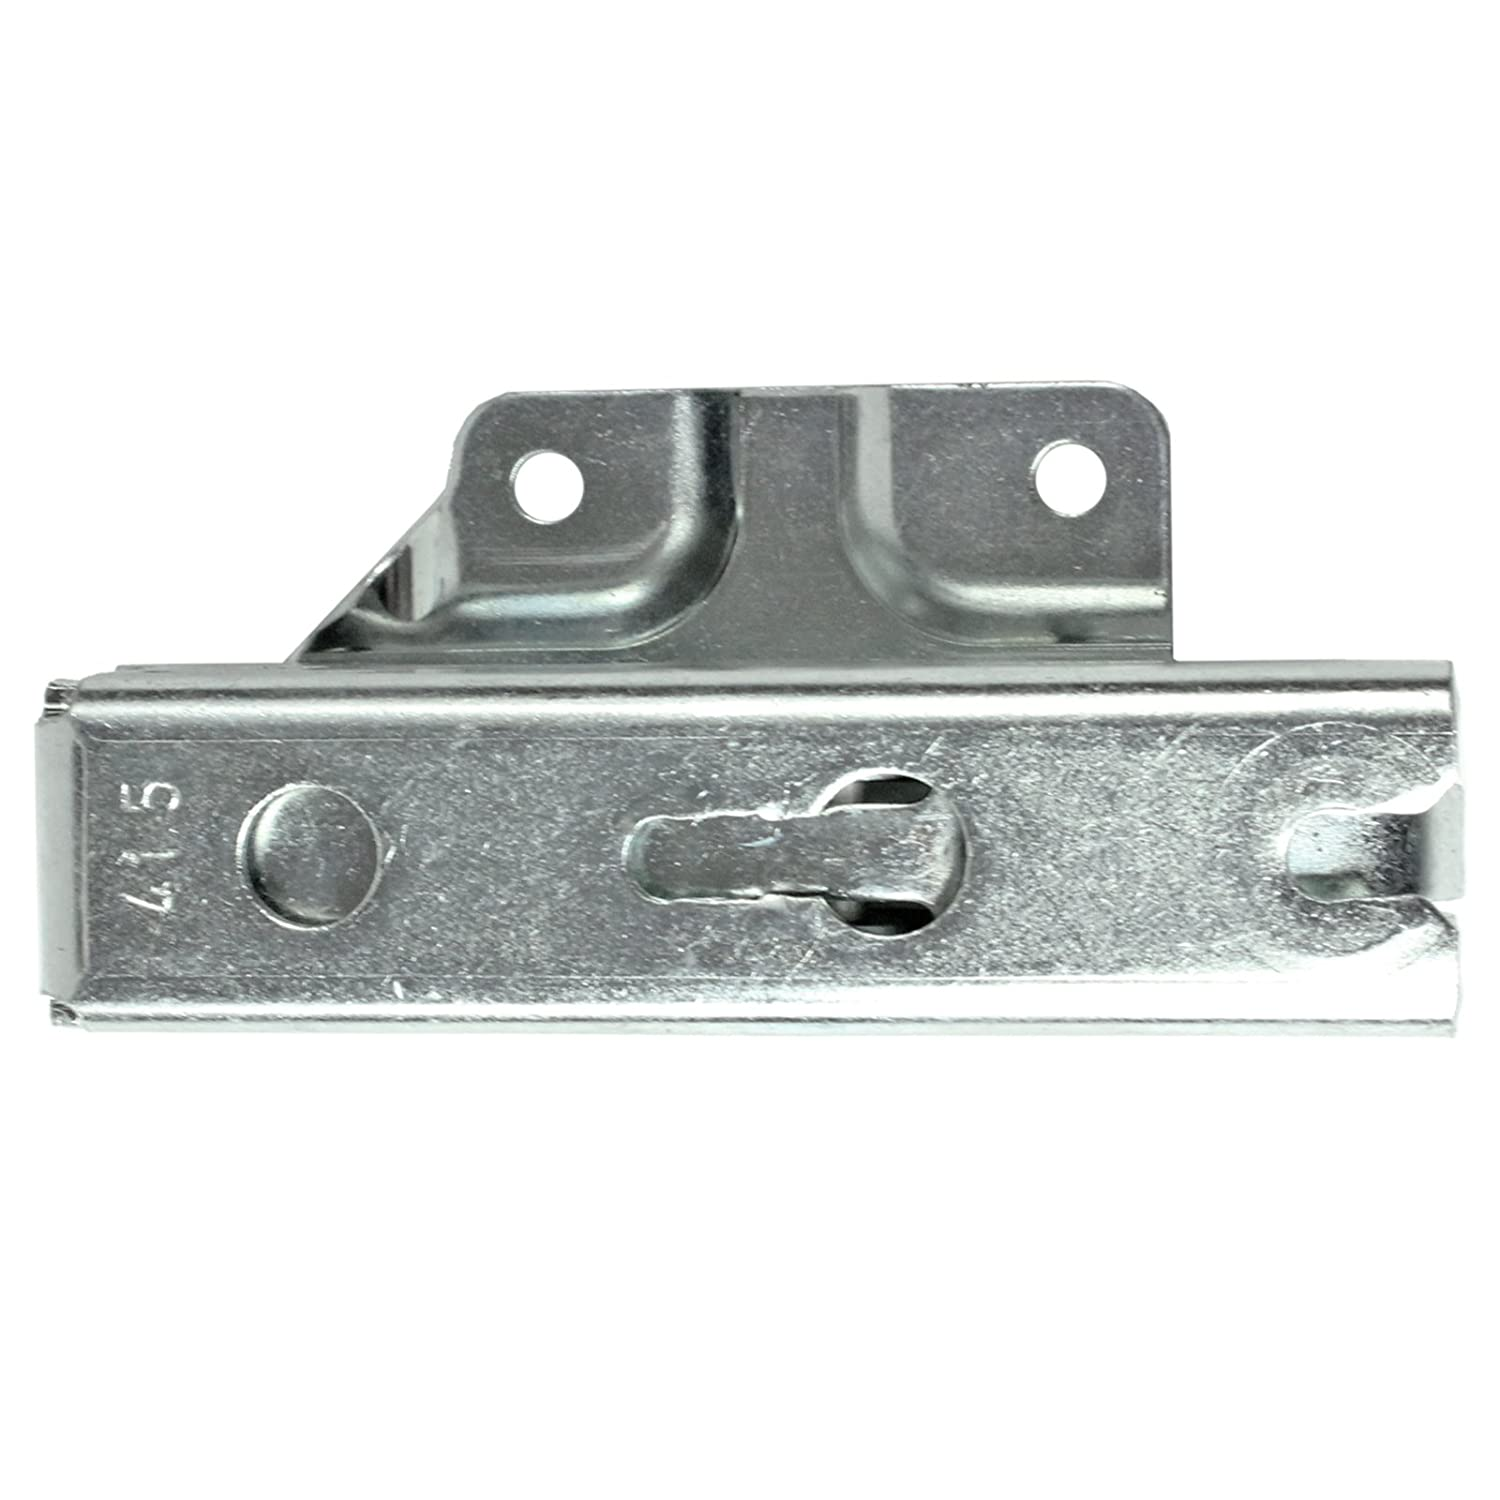 Baumatic BR500 BR508 Fridge Freezer Integrated Door Hinge (Top Left, Lower Right)